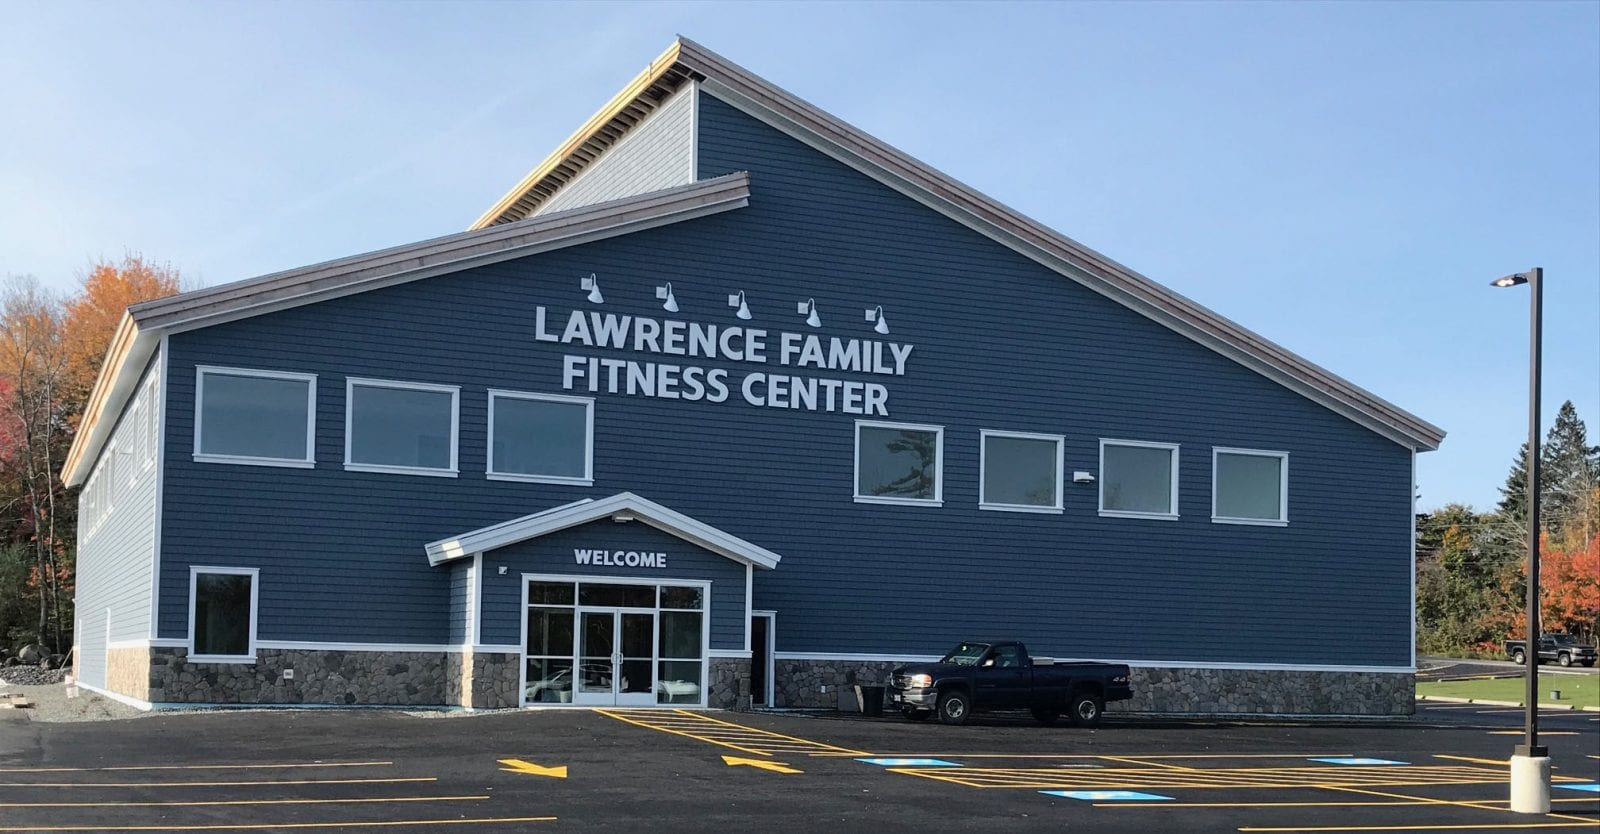 Lawrence Family Fitness Center